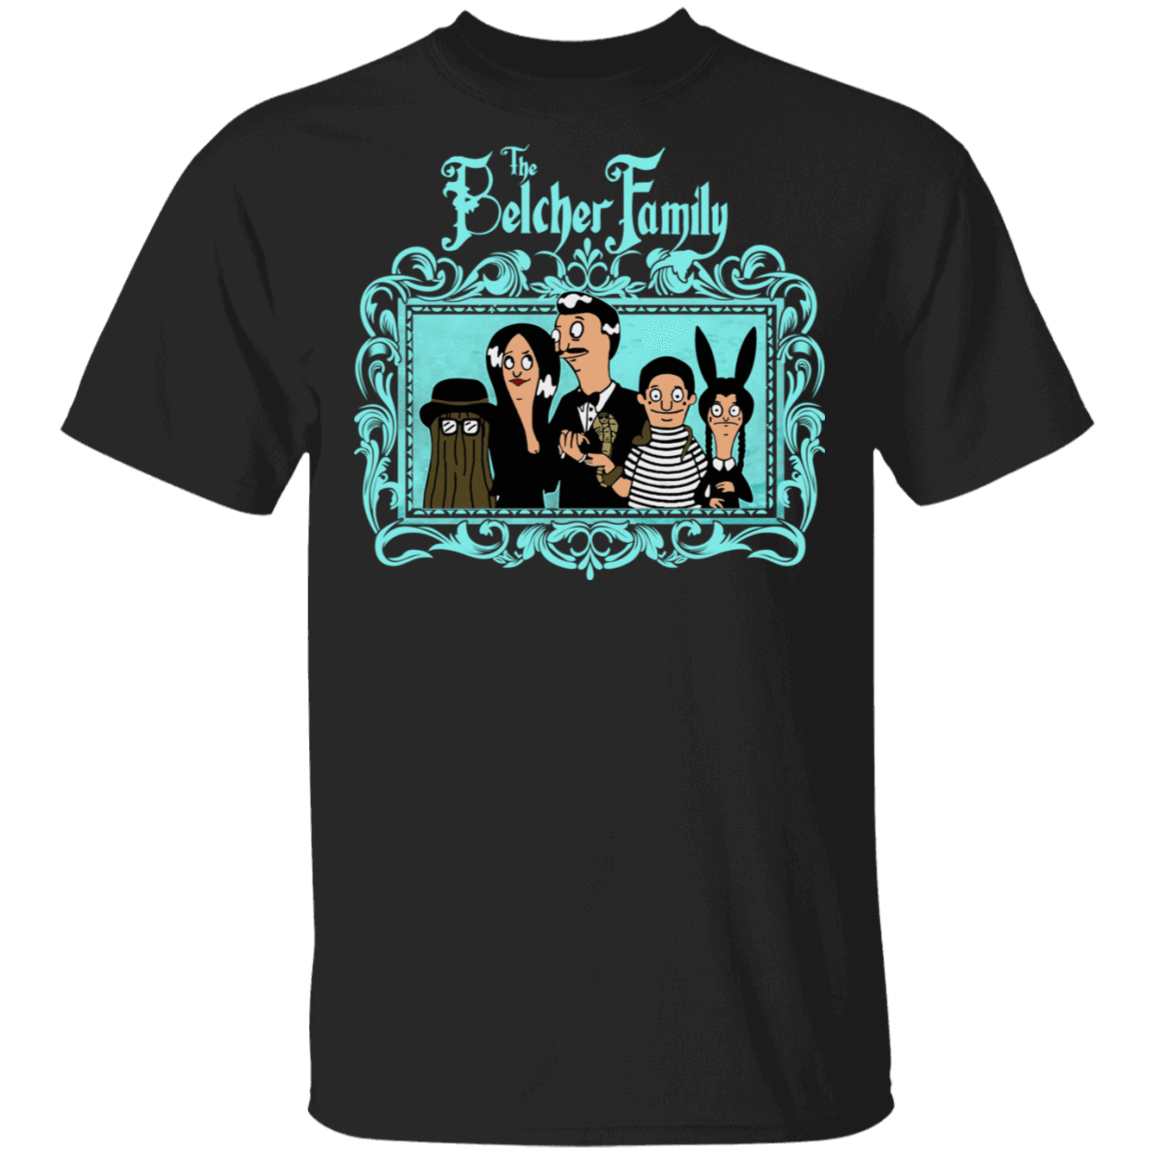 The Belcher Family Bob's Burgers T-Shirts, Hoodies, Tank 1049-9953-81138119-48144 - Tee Ript